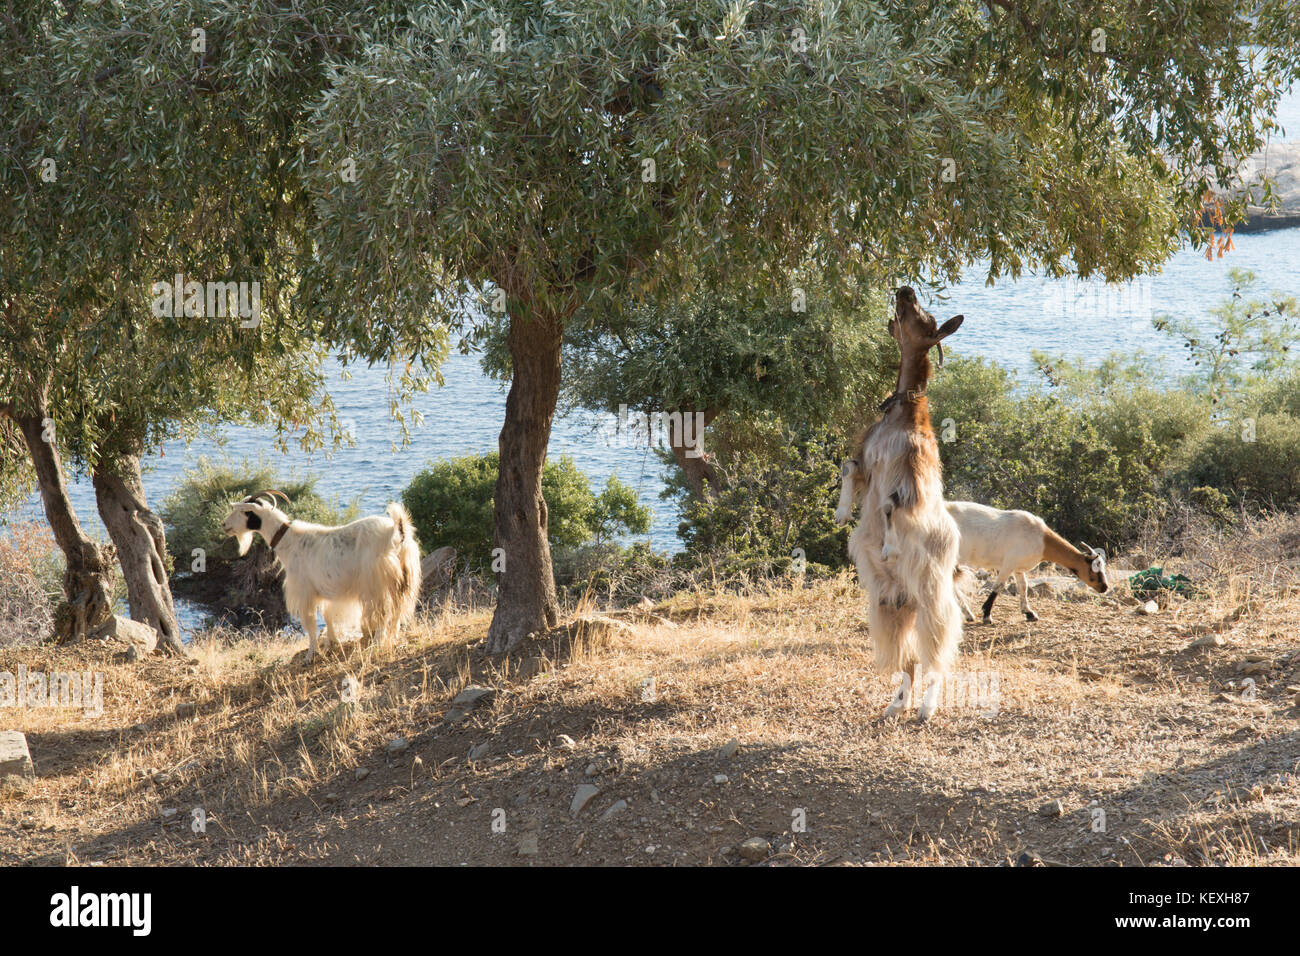 Goat standing on hind legs reaching up to feed on lower branches of an olive tree, Thassos, Greece, Greek island, - Stock Image